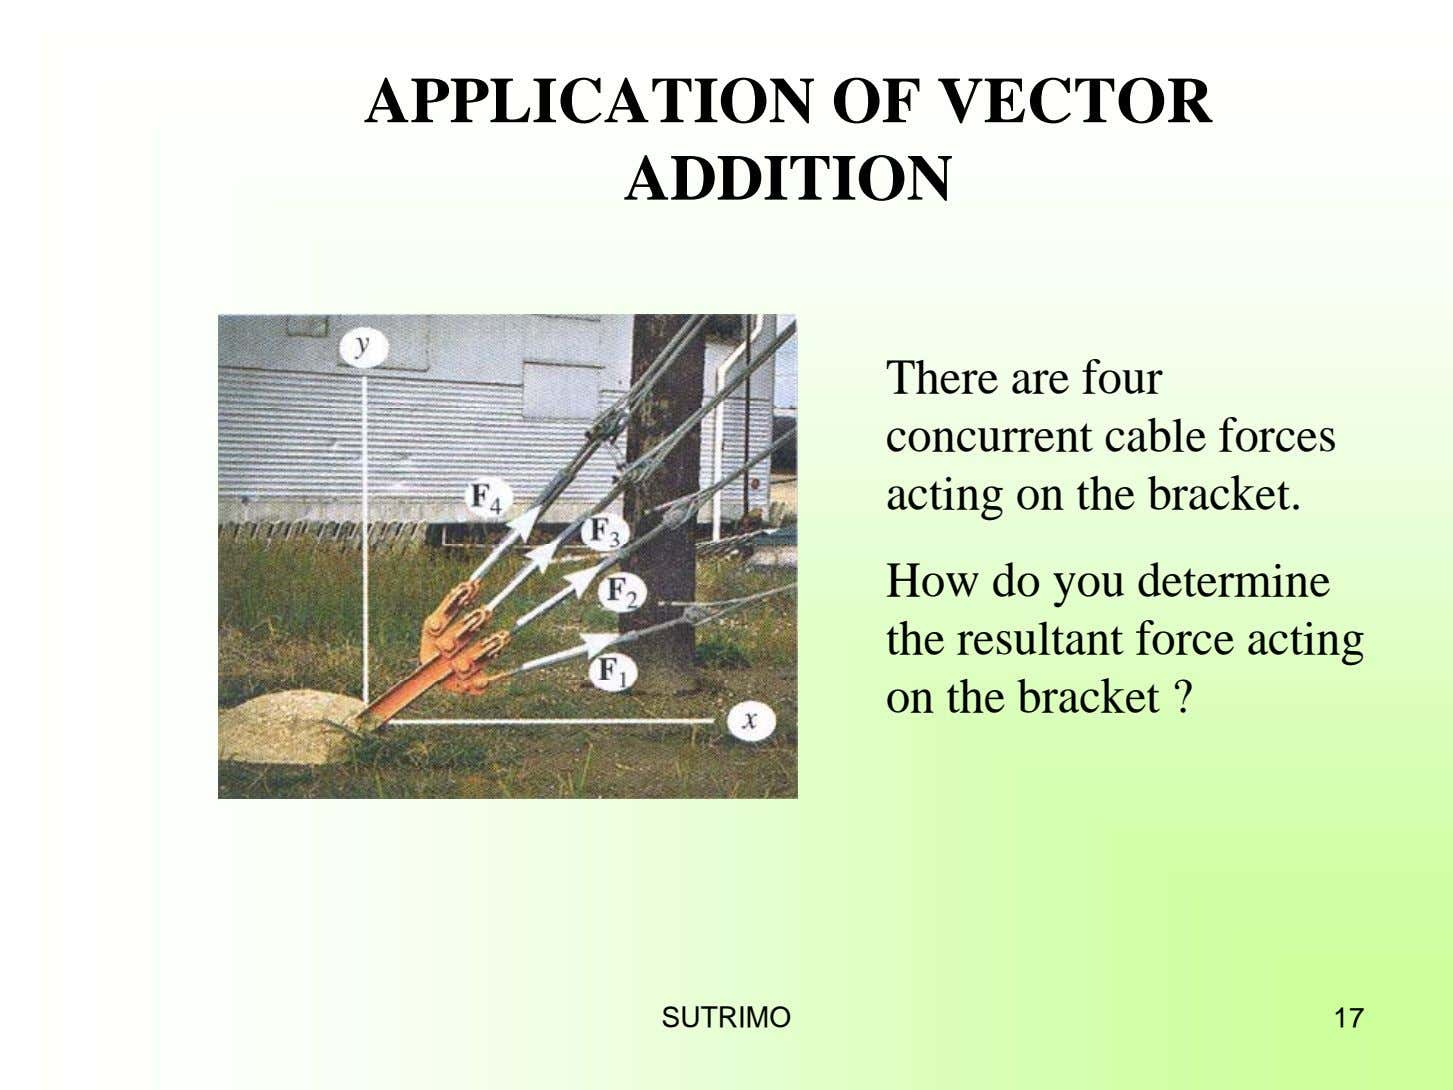 APPLICATION OF VECTOR ADDITION There are four concurrent cable forces acting on the bracket. How